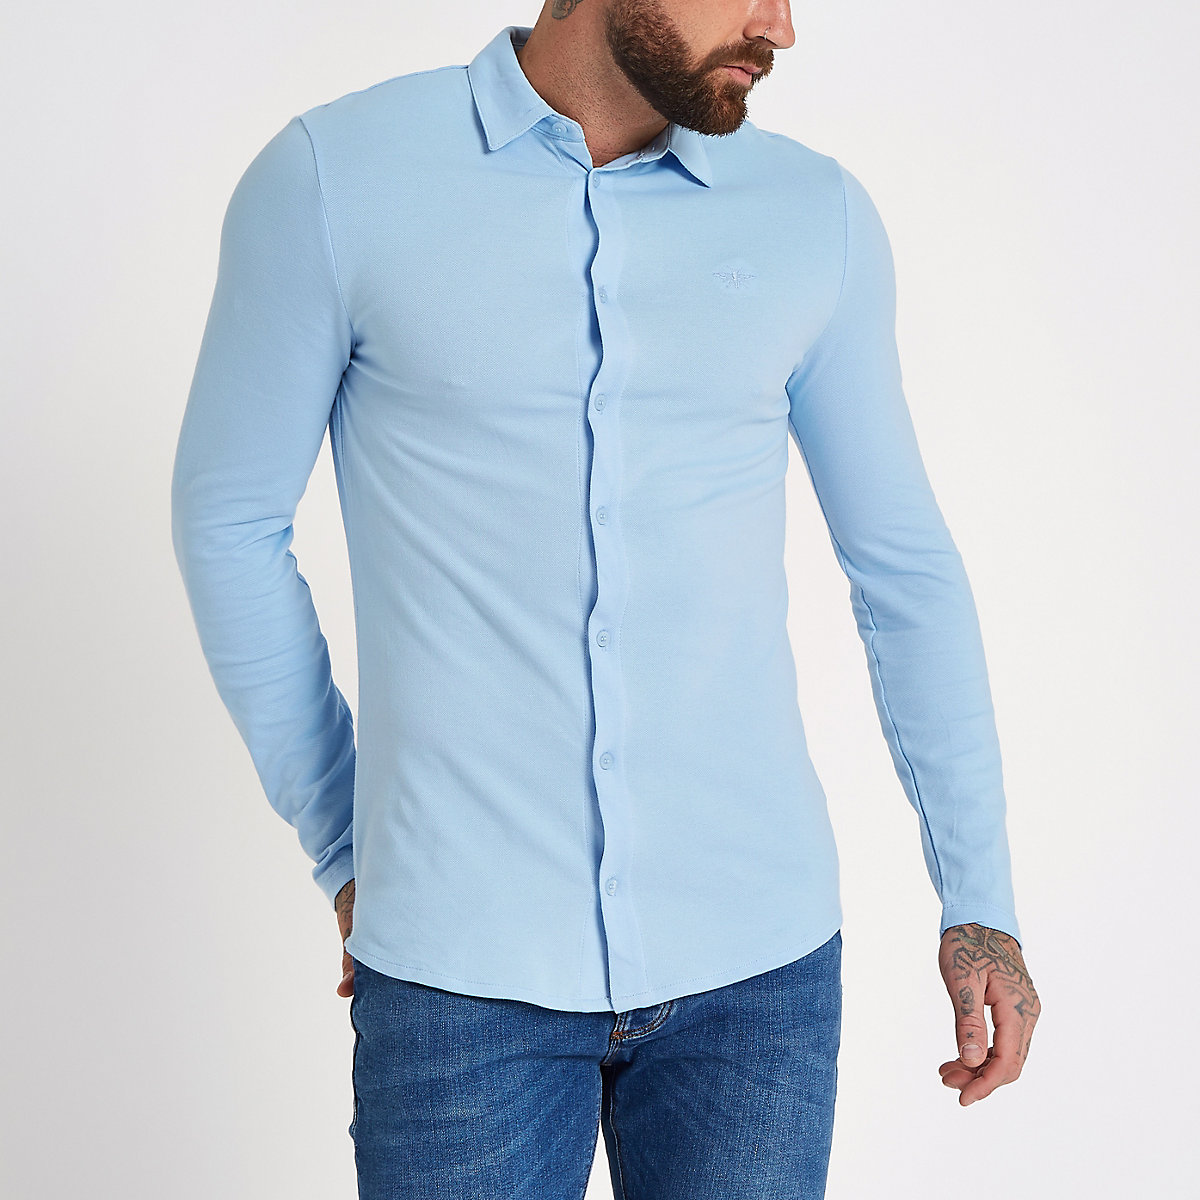 Blue muscle fit long sleeve button-down shirt